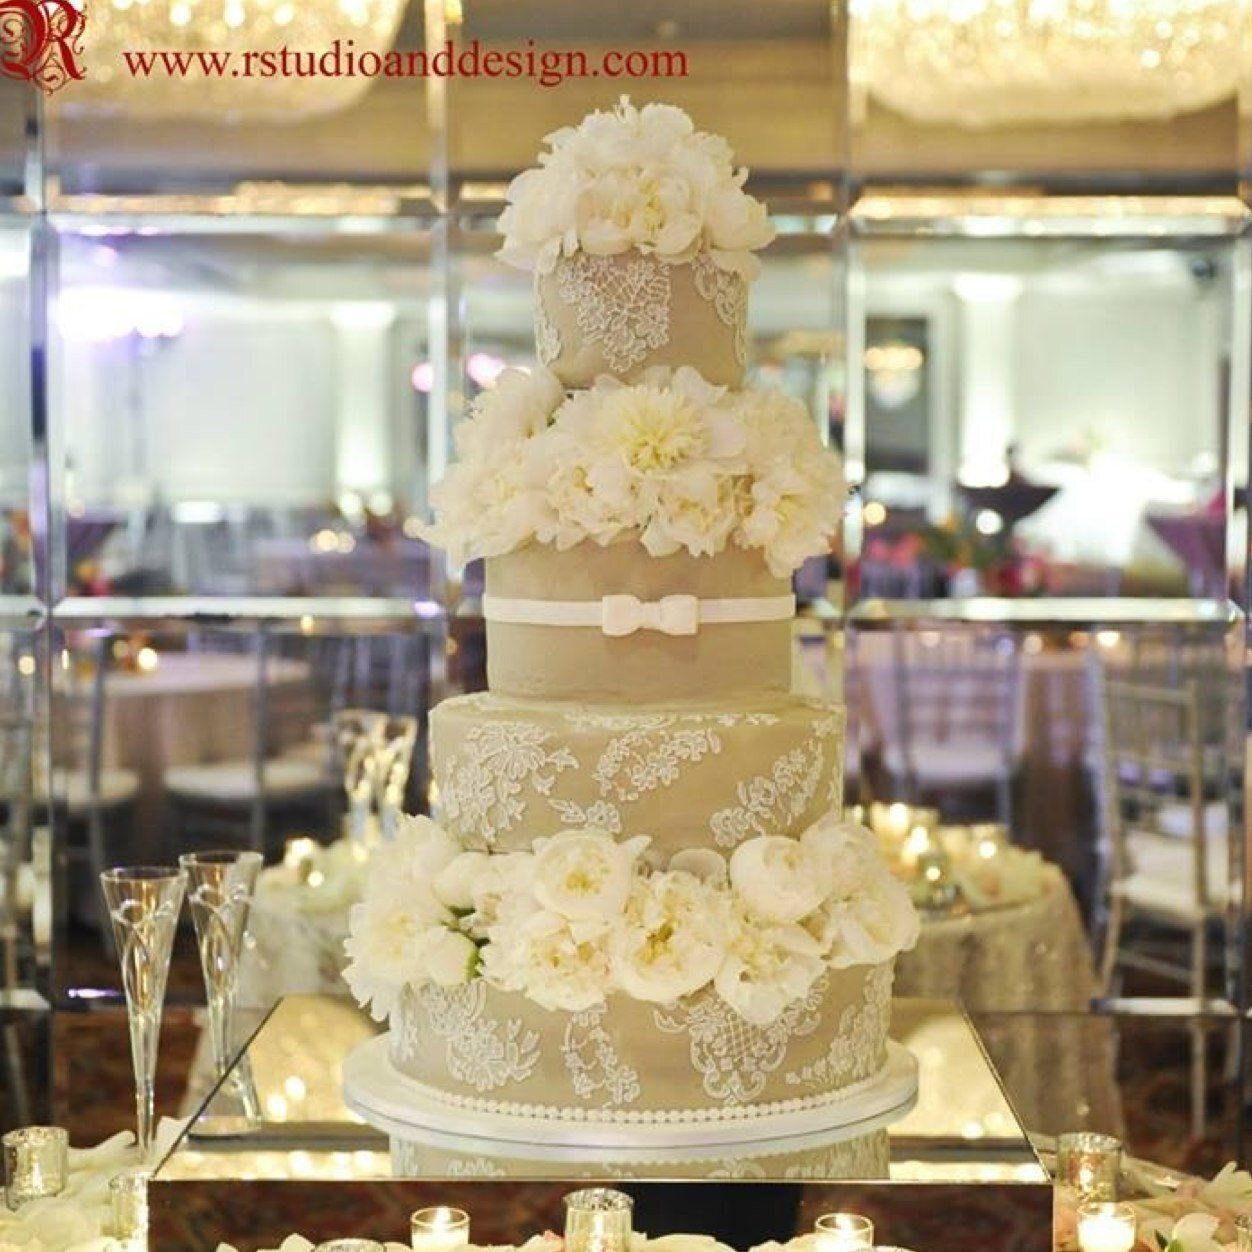 Couture Cakes (@CouturecakesAL) | Twitter